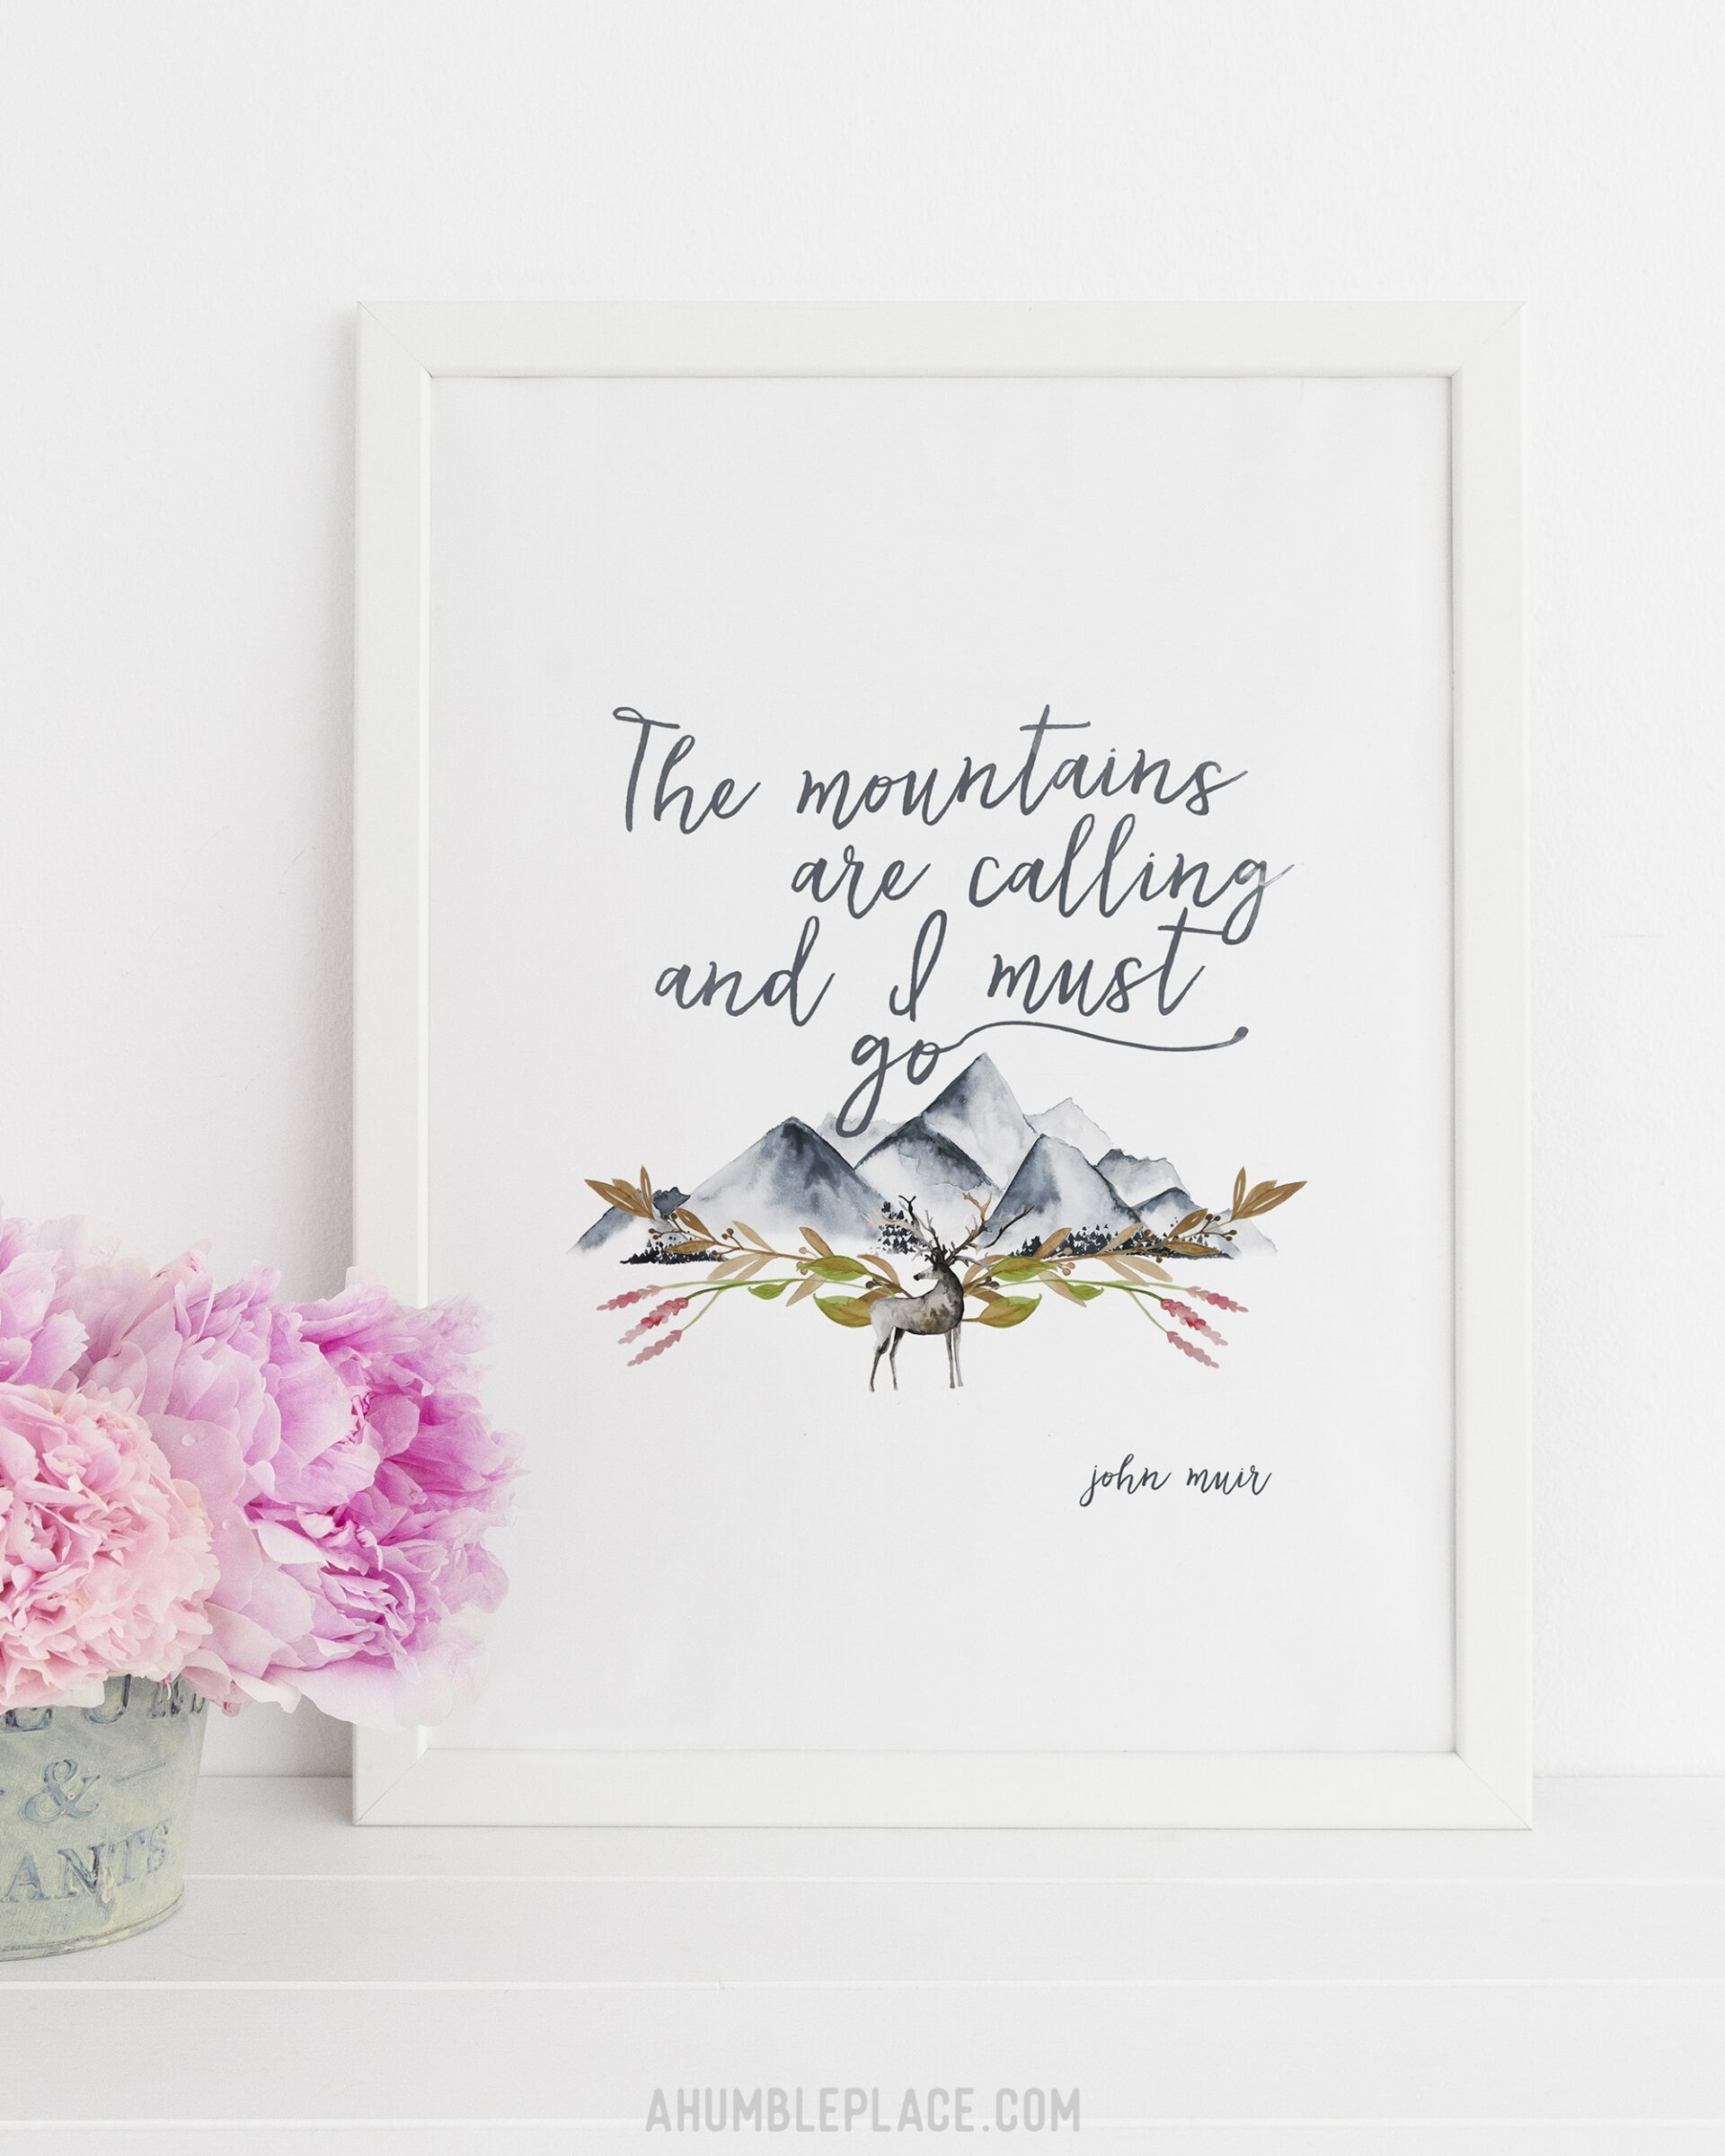 John Muir The Mountains Are Calling Quote With Watercolor